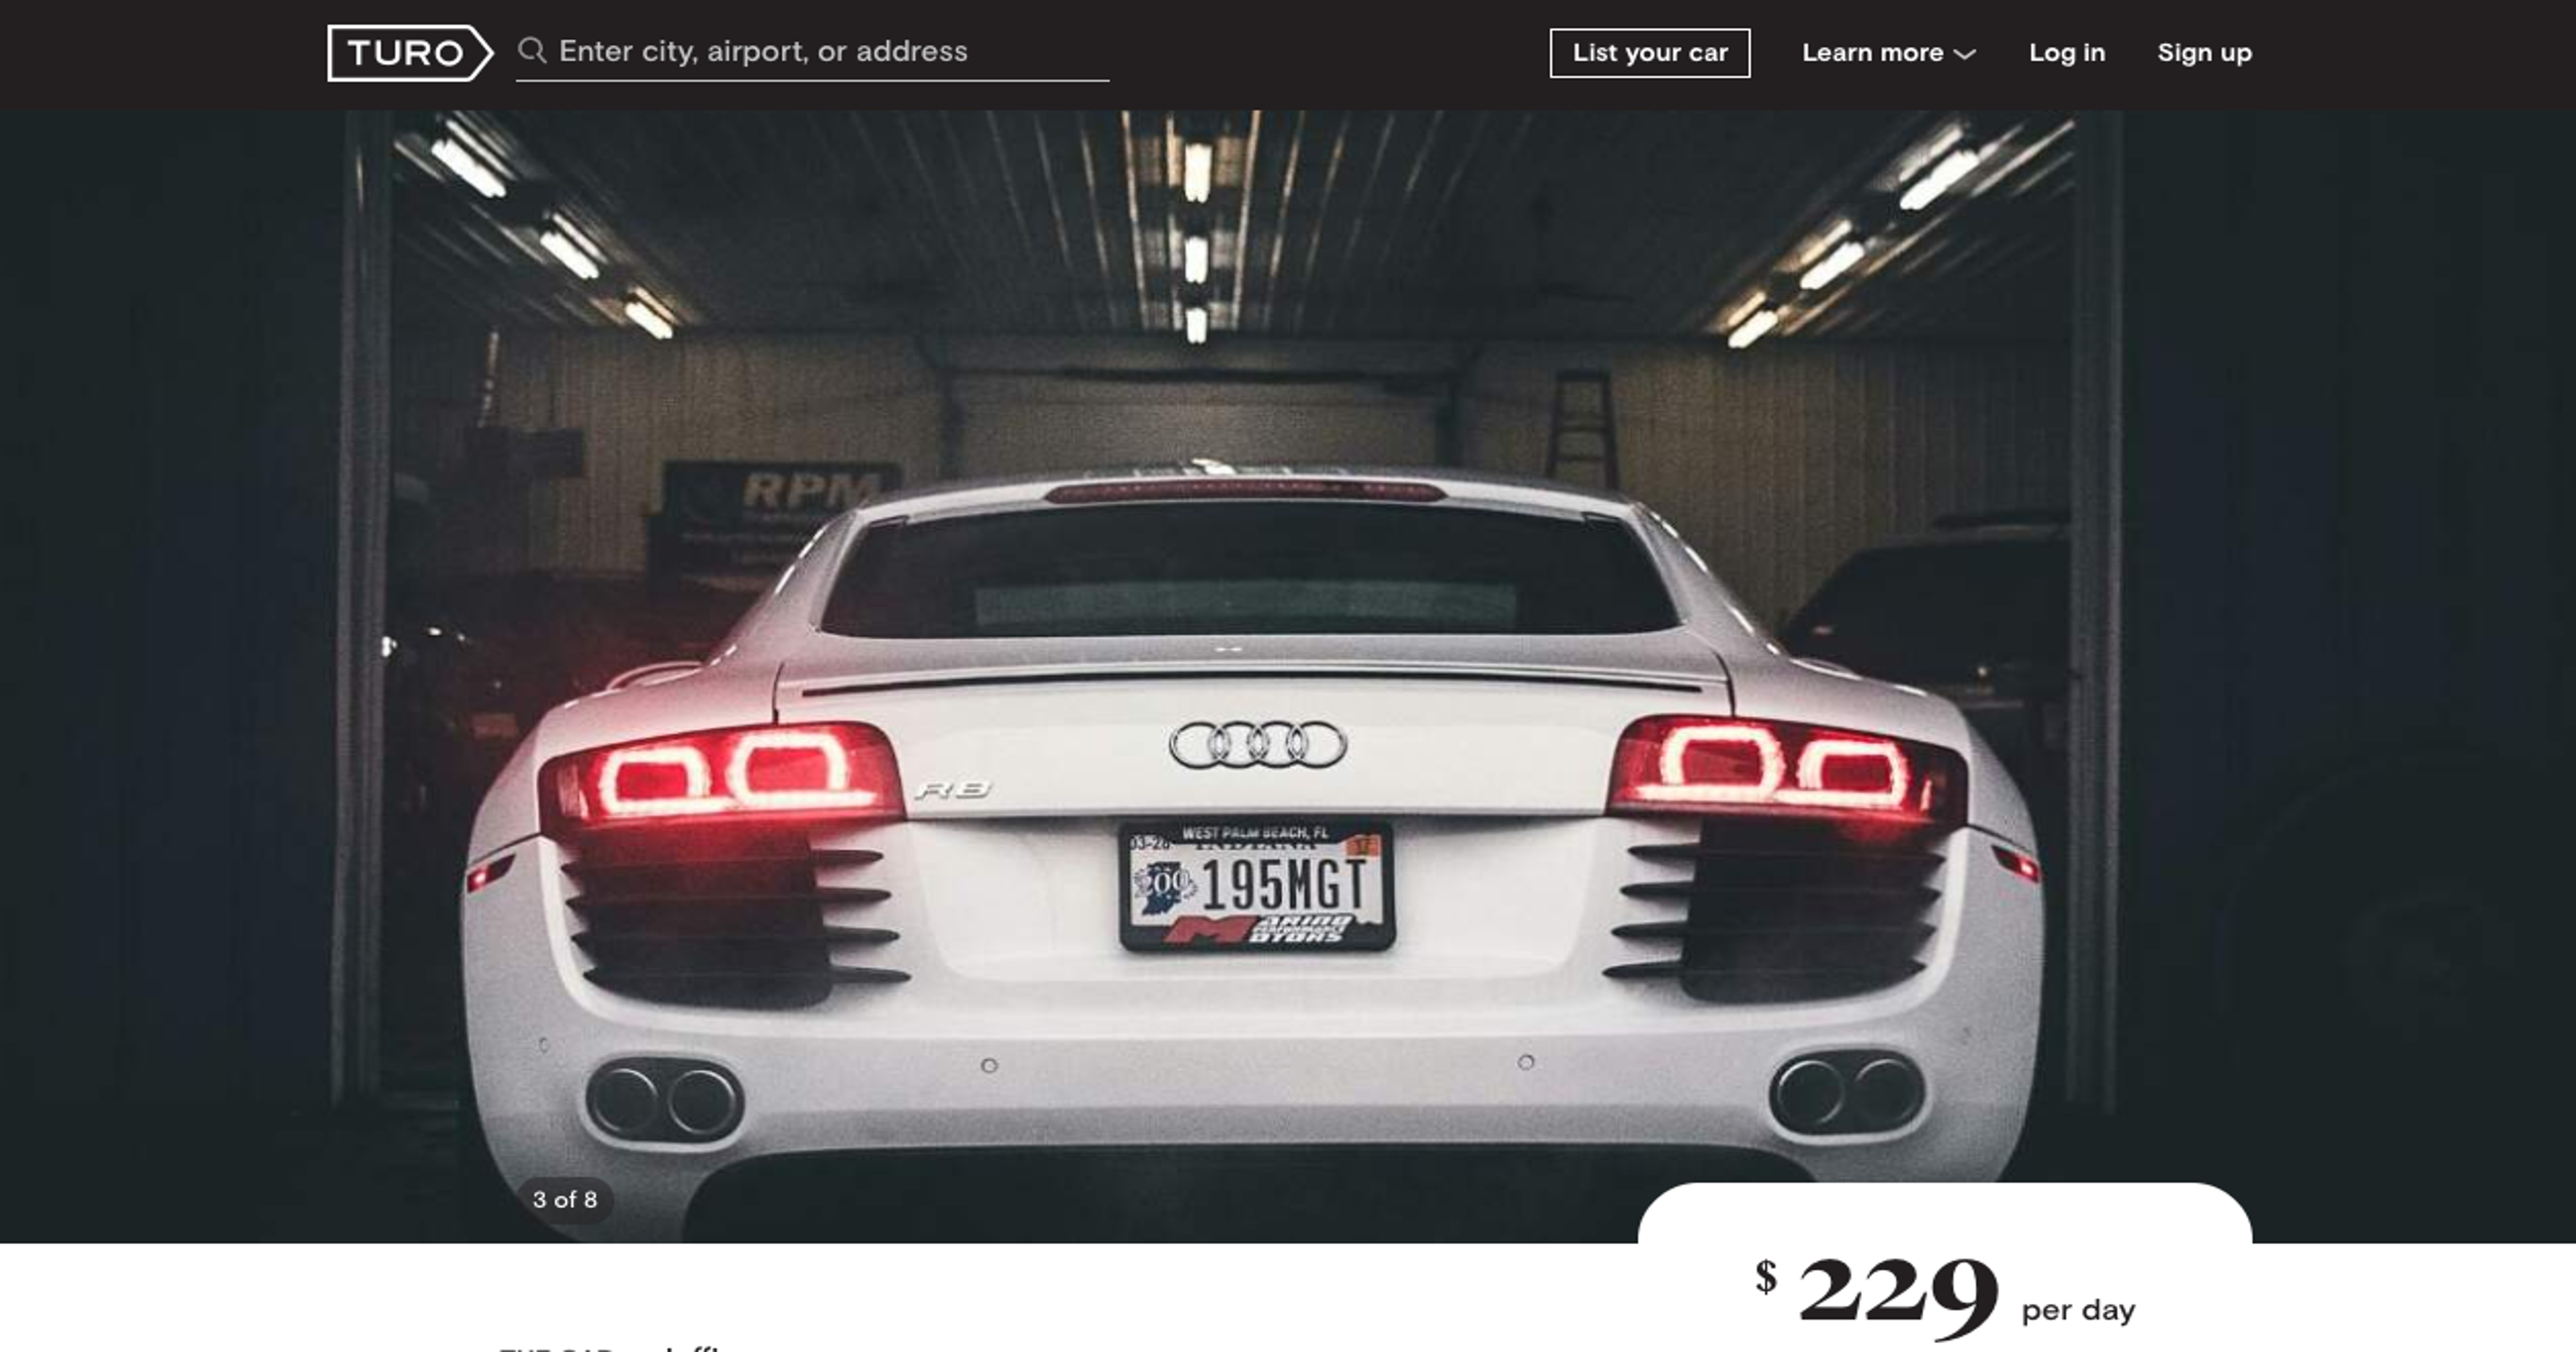 5 Coolest Indy Rides On Airbnb For Cars Turo